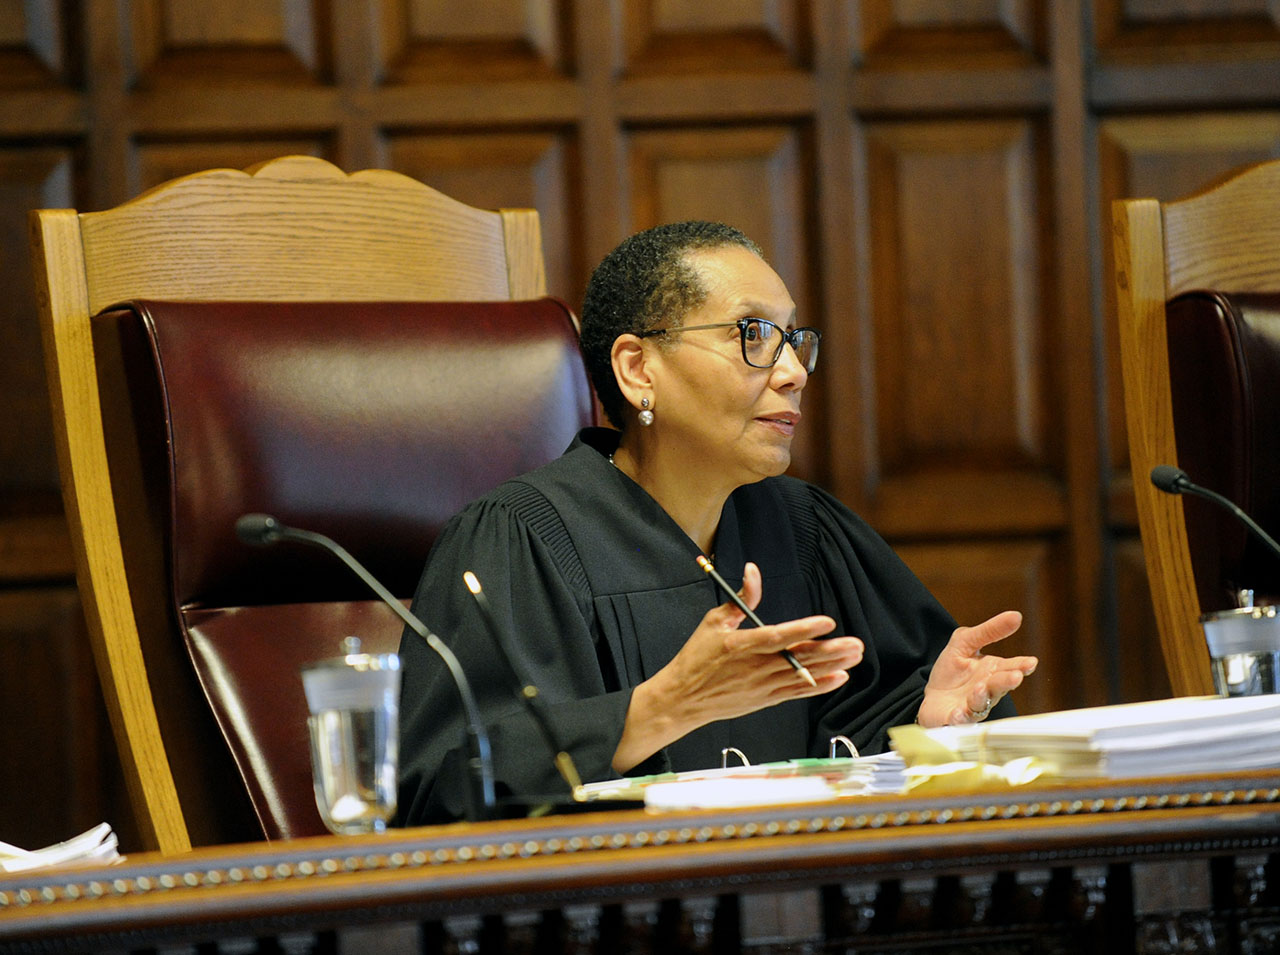 <div class='meta'><div class='origin-logo' data-origin='AP'></div><span class='caption-text' data-credit='AP Photo/Hans Pennink'>Sheila Abdus-Salaam listens to oral arguments on whether criminal defendants should be allowed to use allegations made in civil rights lawsuits against police witnesses.</span></div>